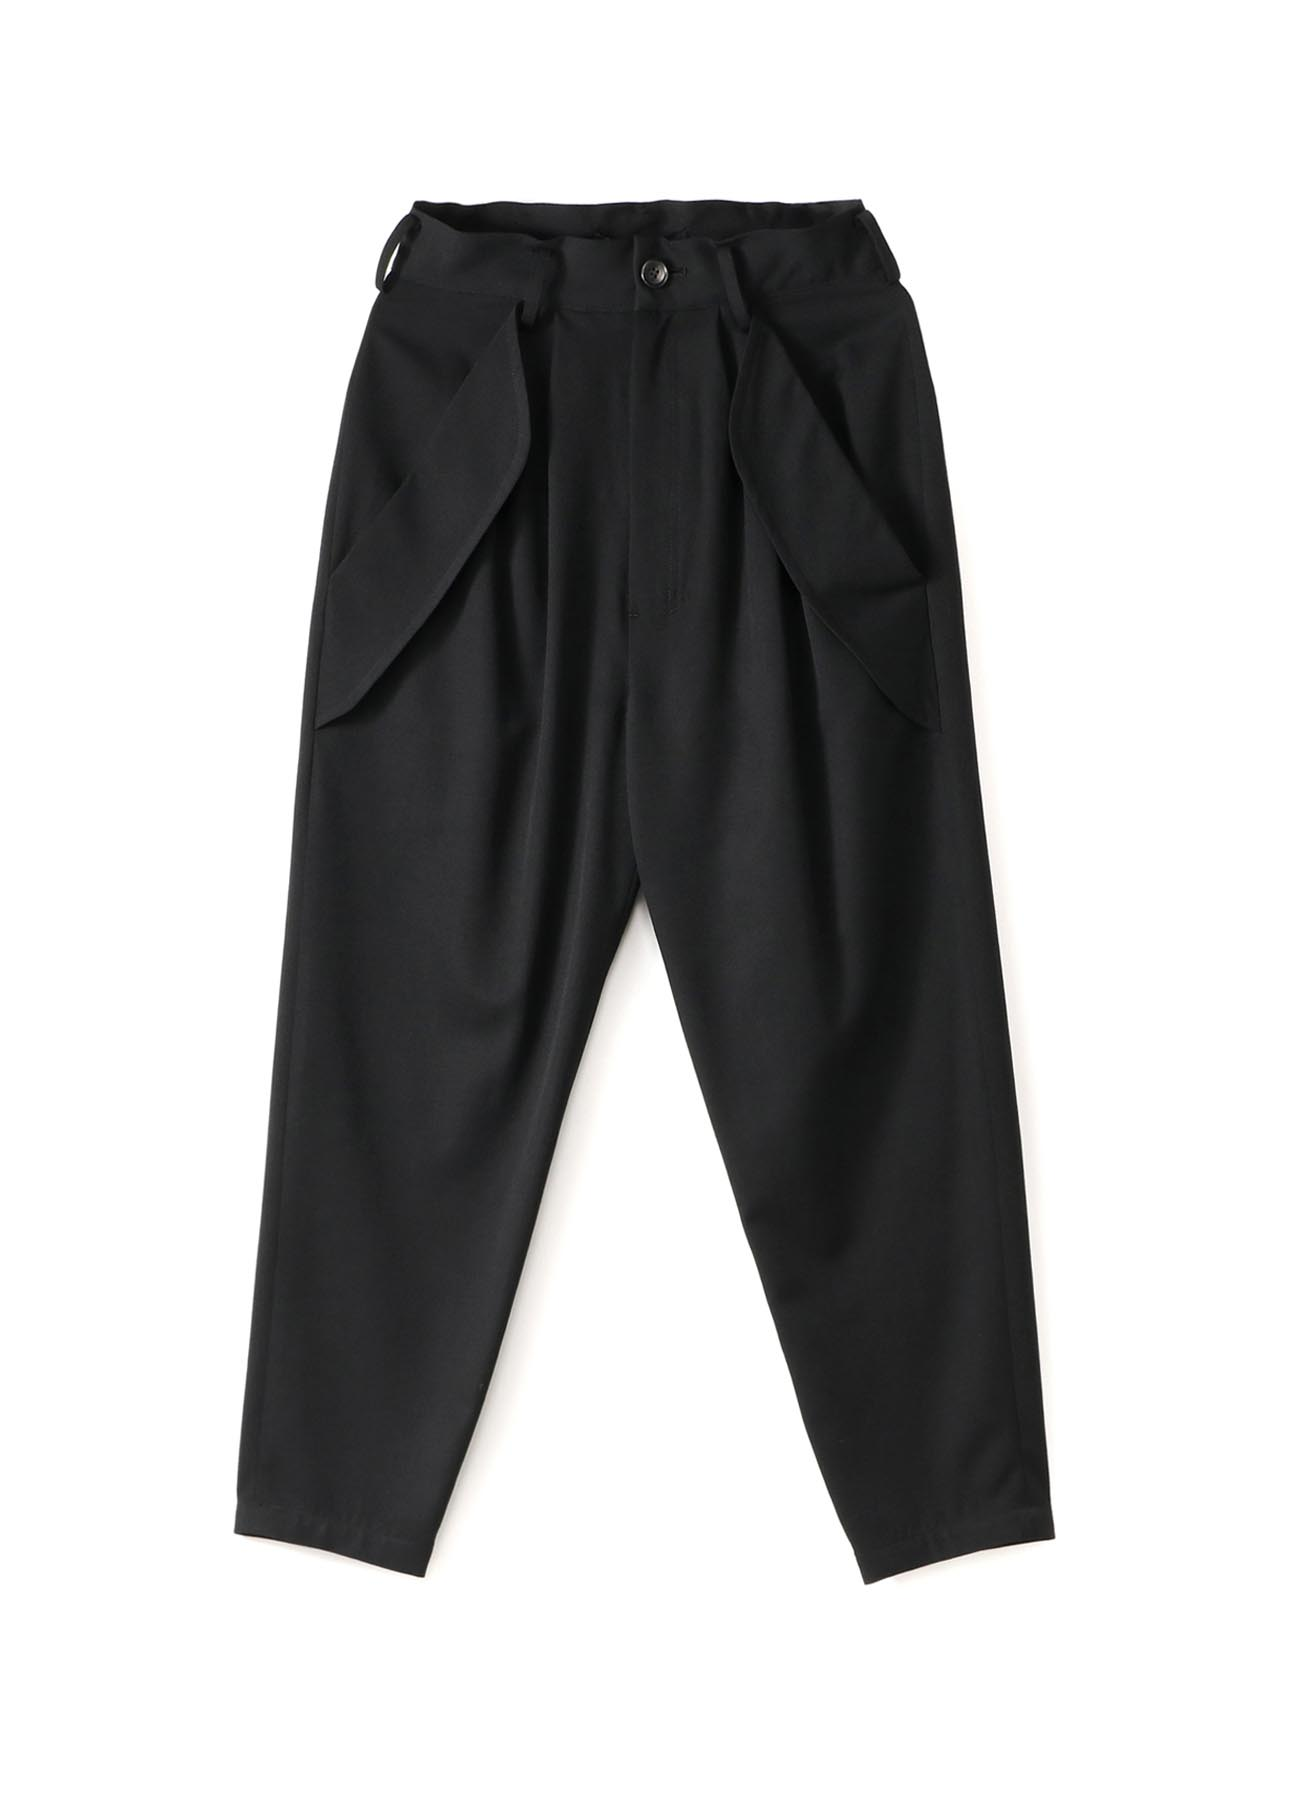 W/Gabardine Big Flap Pants